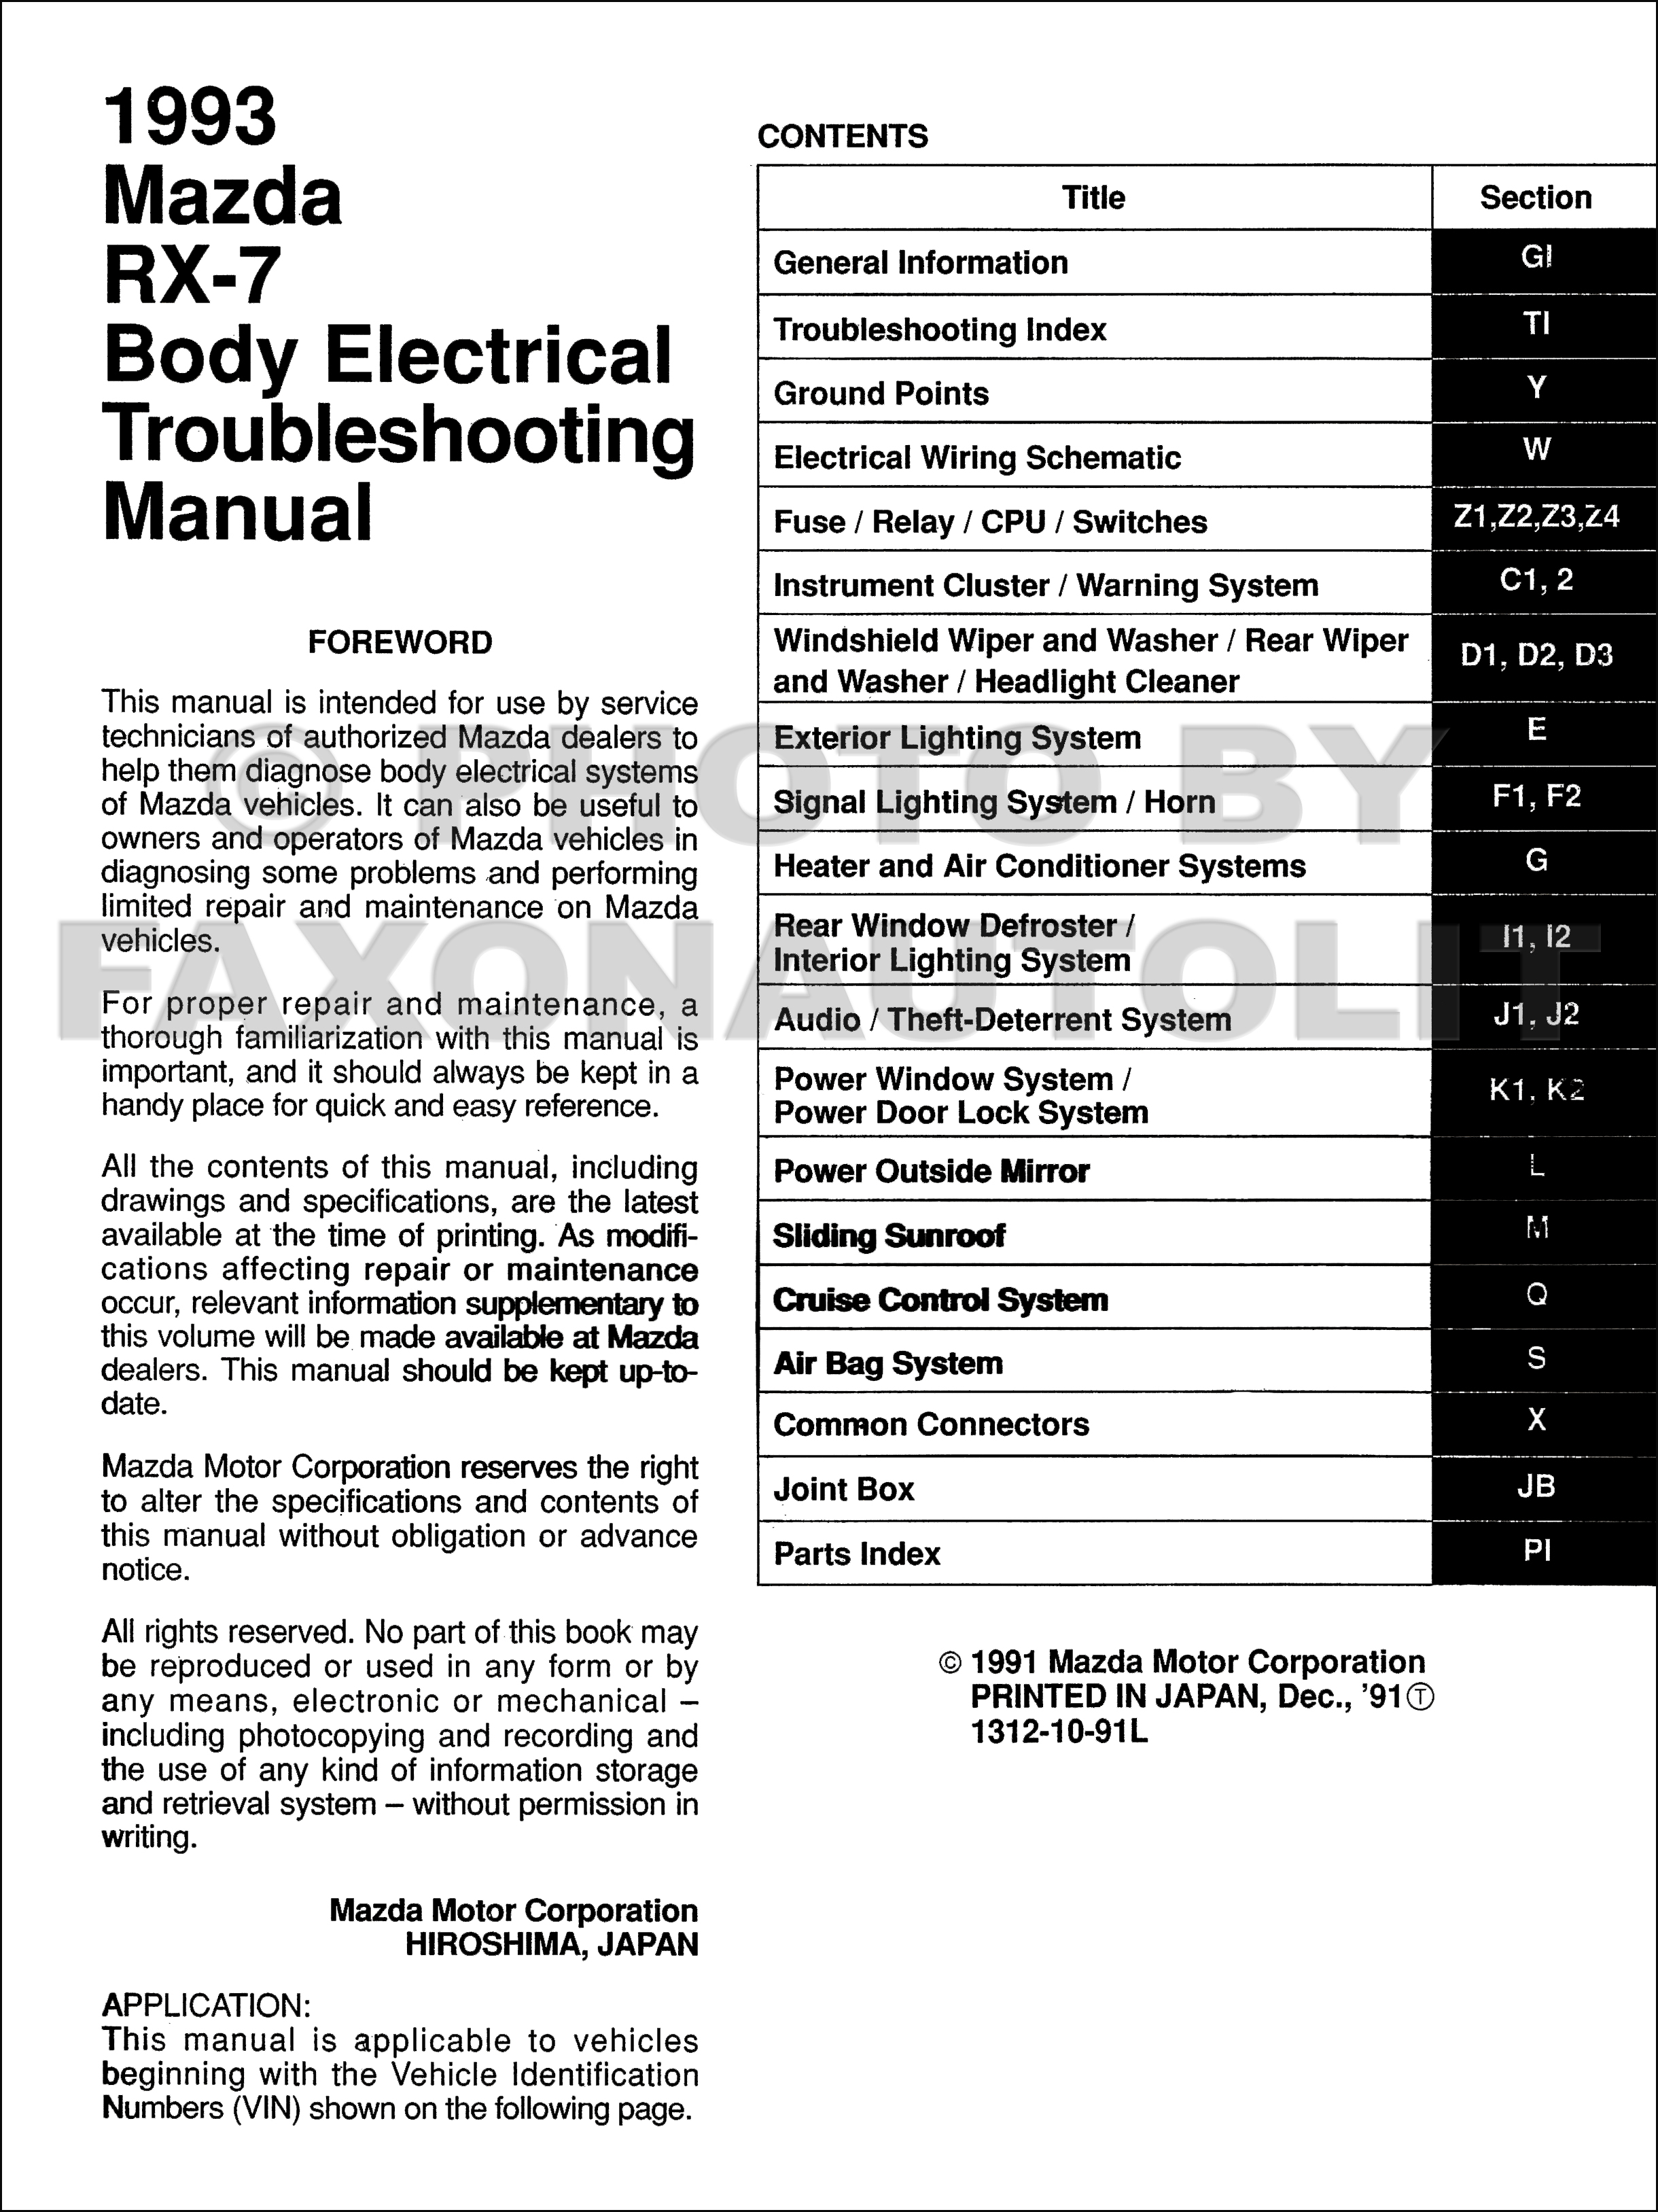 1993 Mazda RX7 Body Electrical Troubleshooting Manual Original